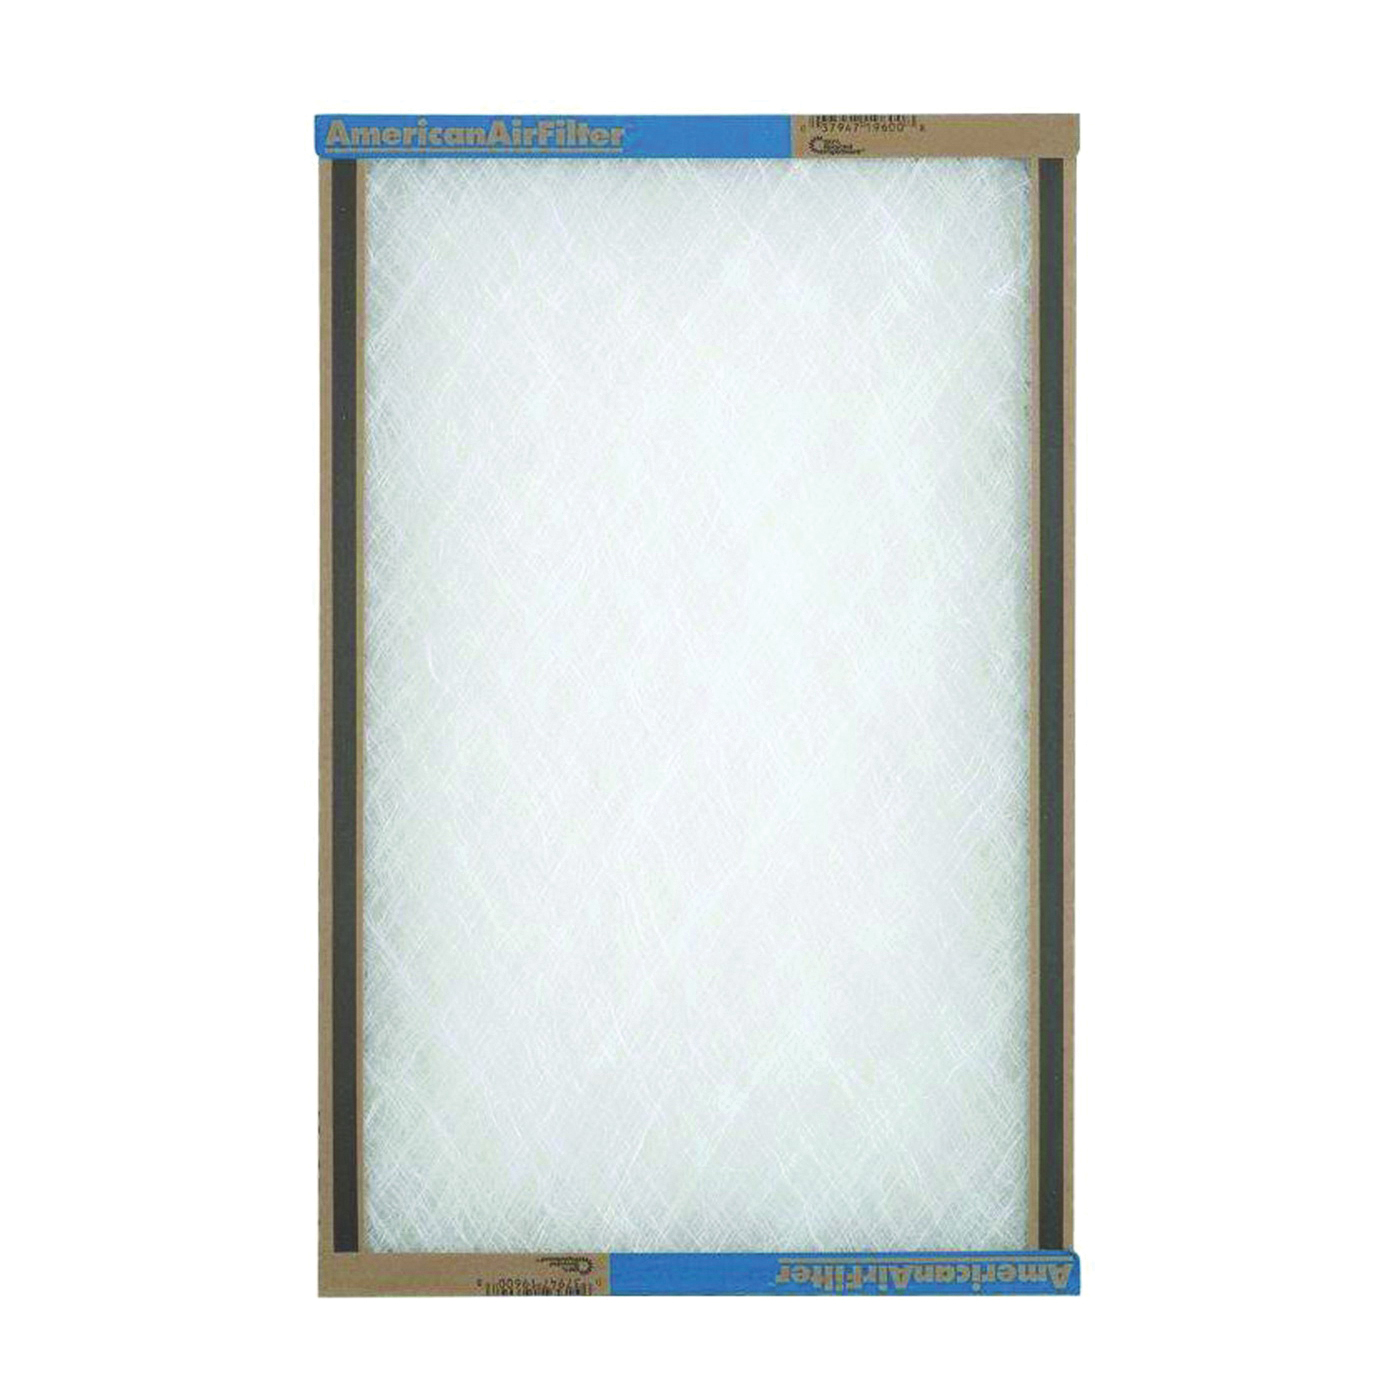 Picture of AAF 114241 Panel Filter, 24 in L, 14 in W, Chipboard Frame